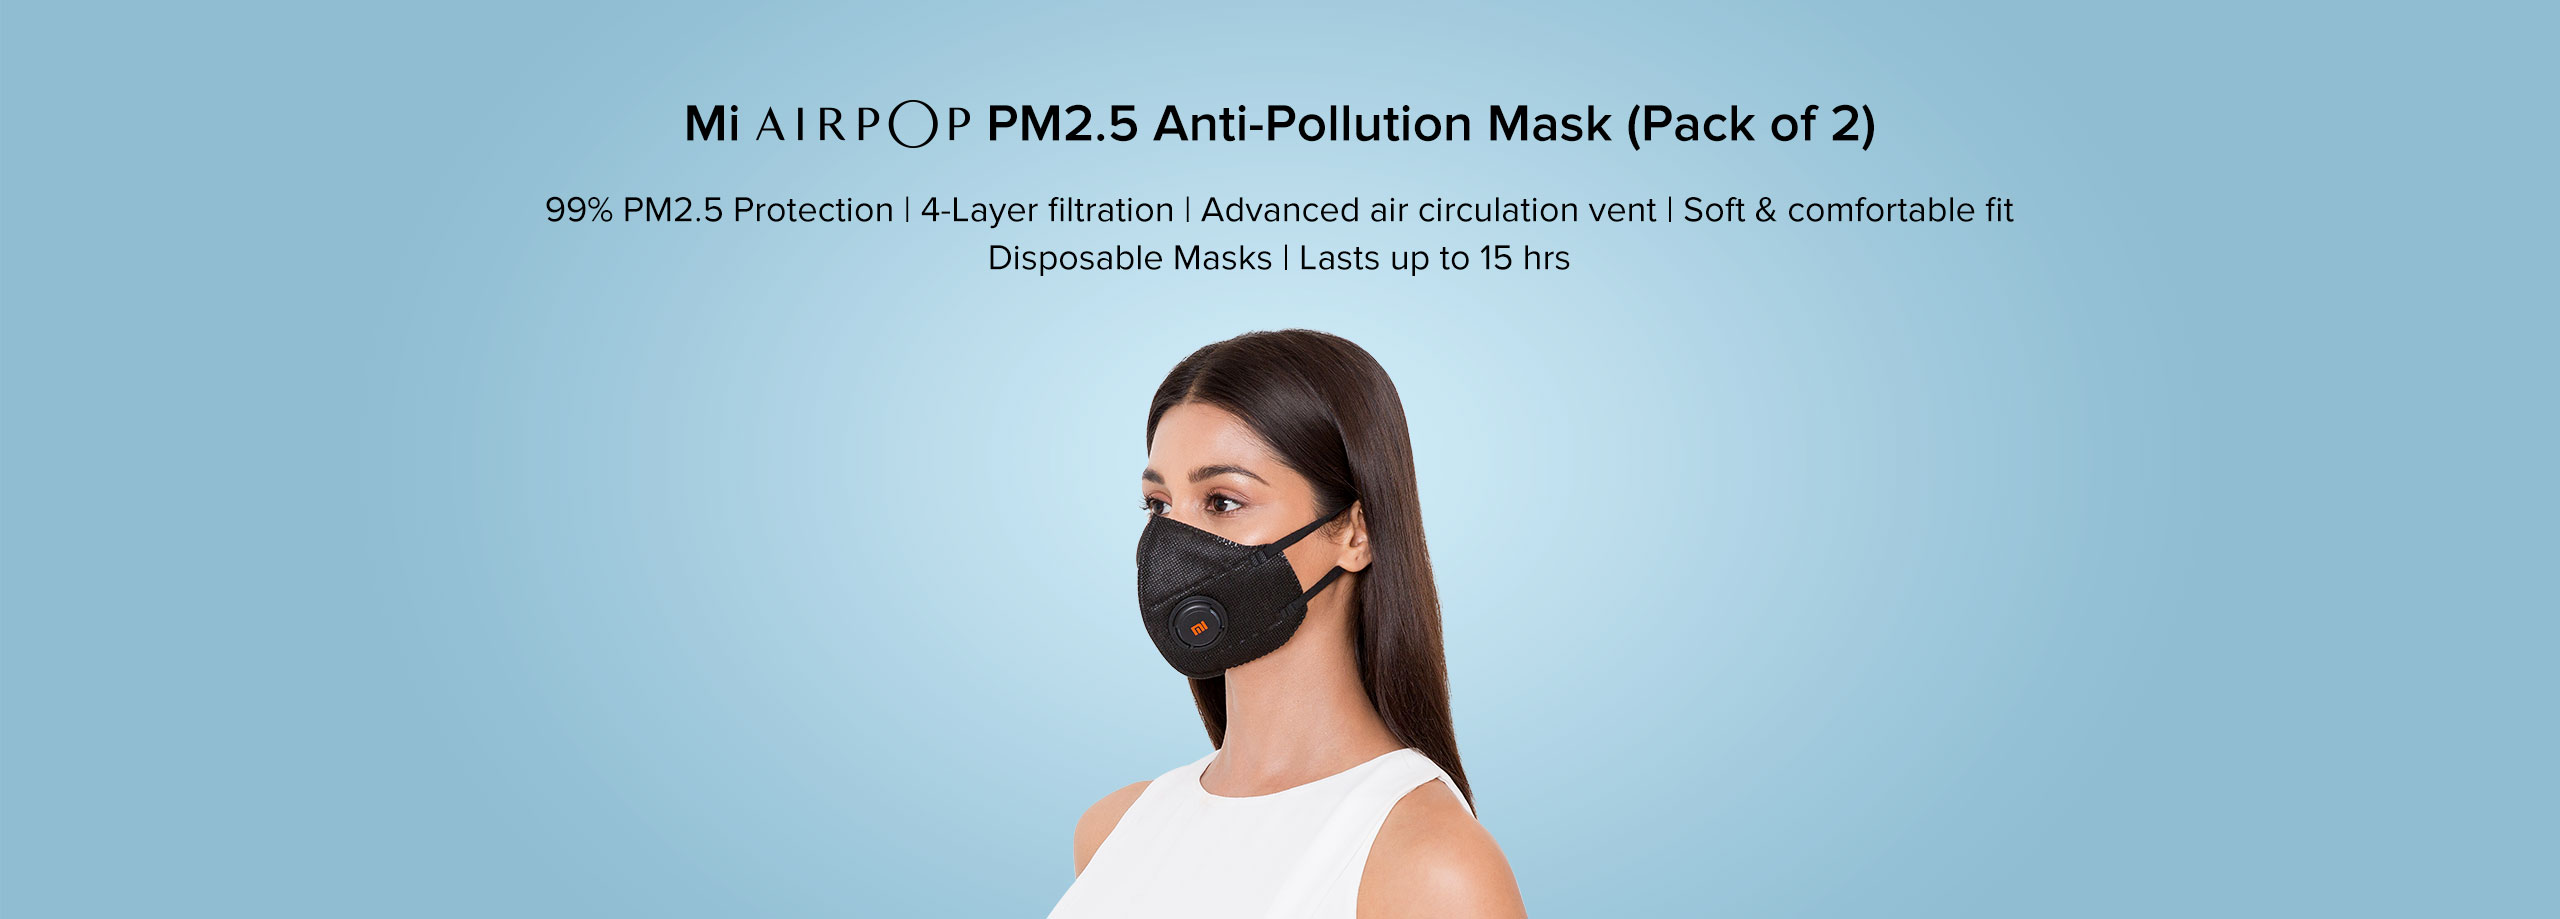 Mi AirPOP PM2 5 Anti-Pollution Mask(Pack of 2) - Lifestyle